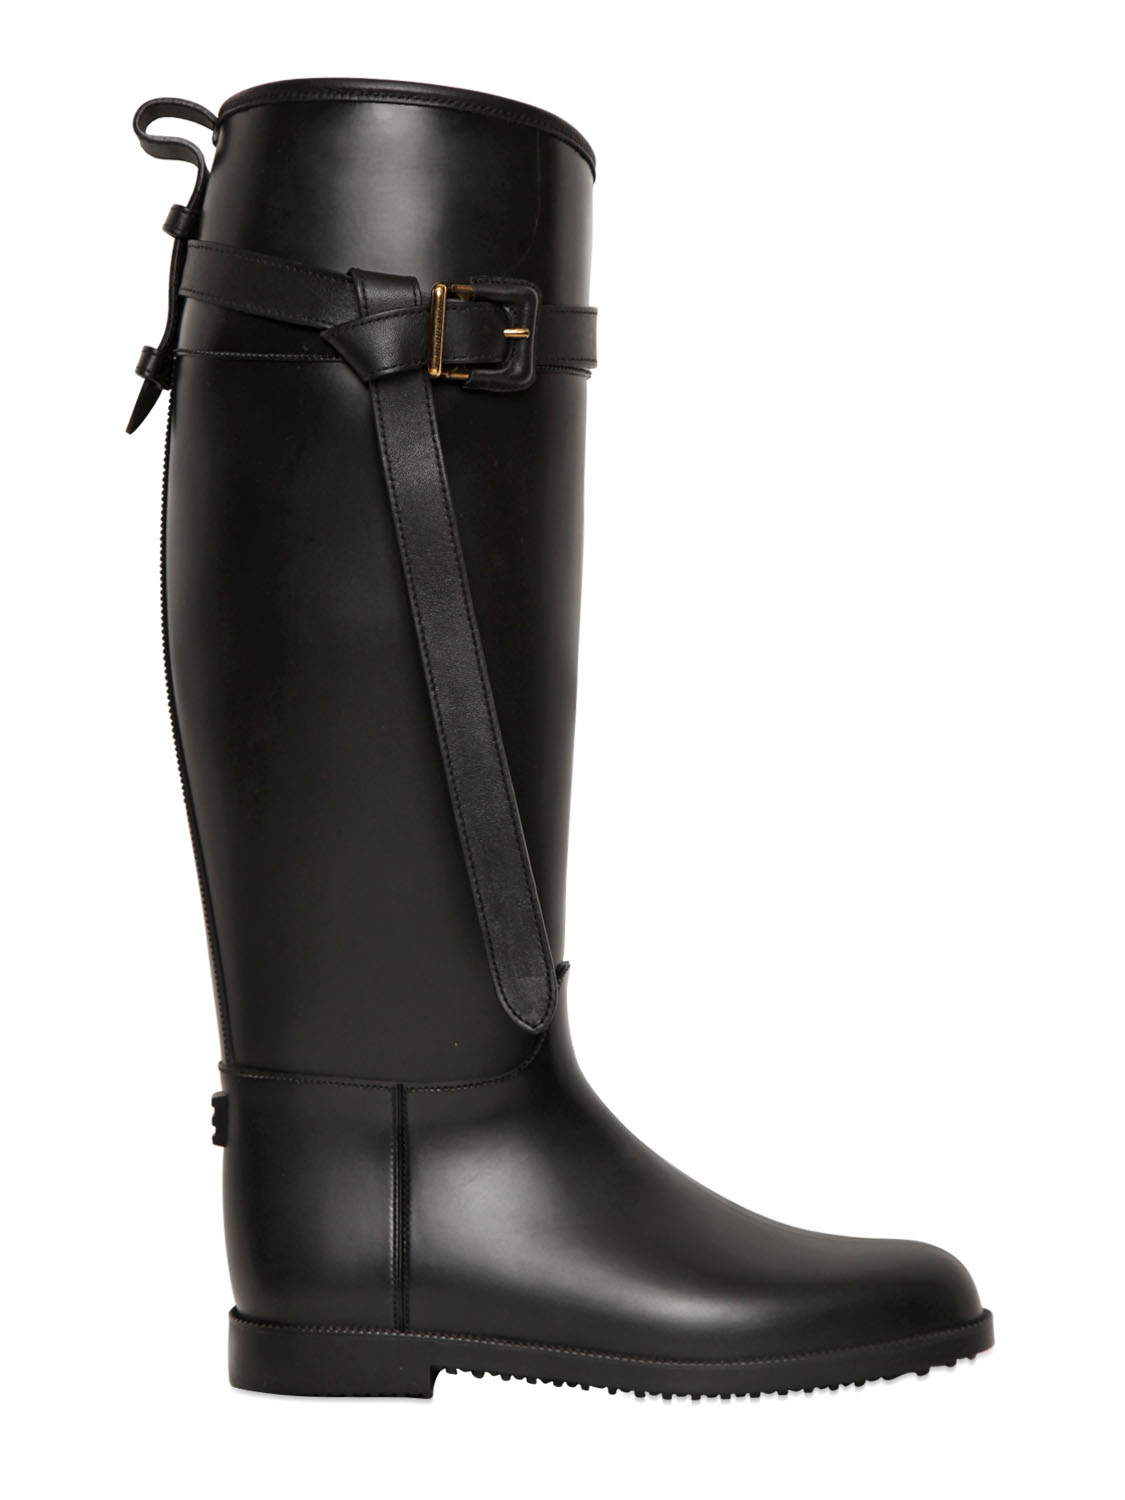 Burberry 20Mm Brain Rubber Rain Boots in Black | Lyst